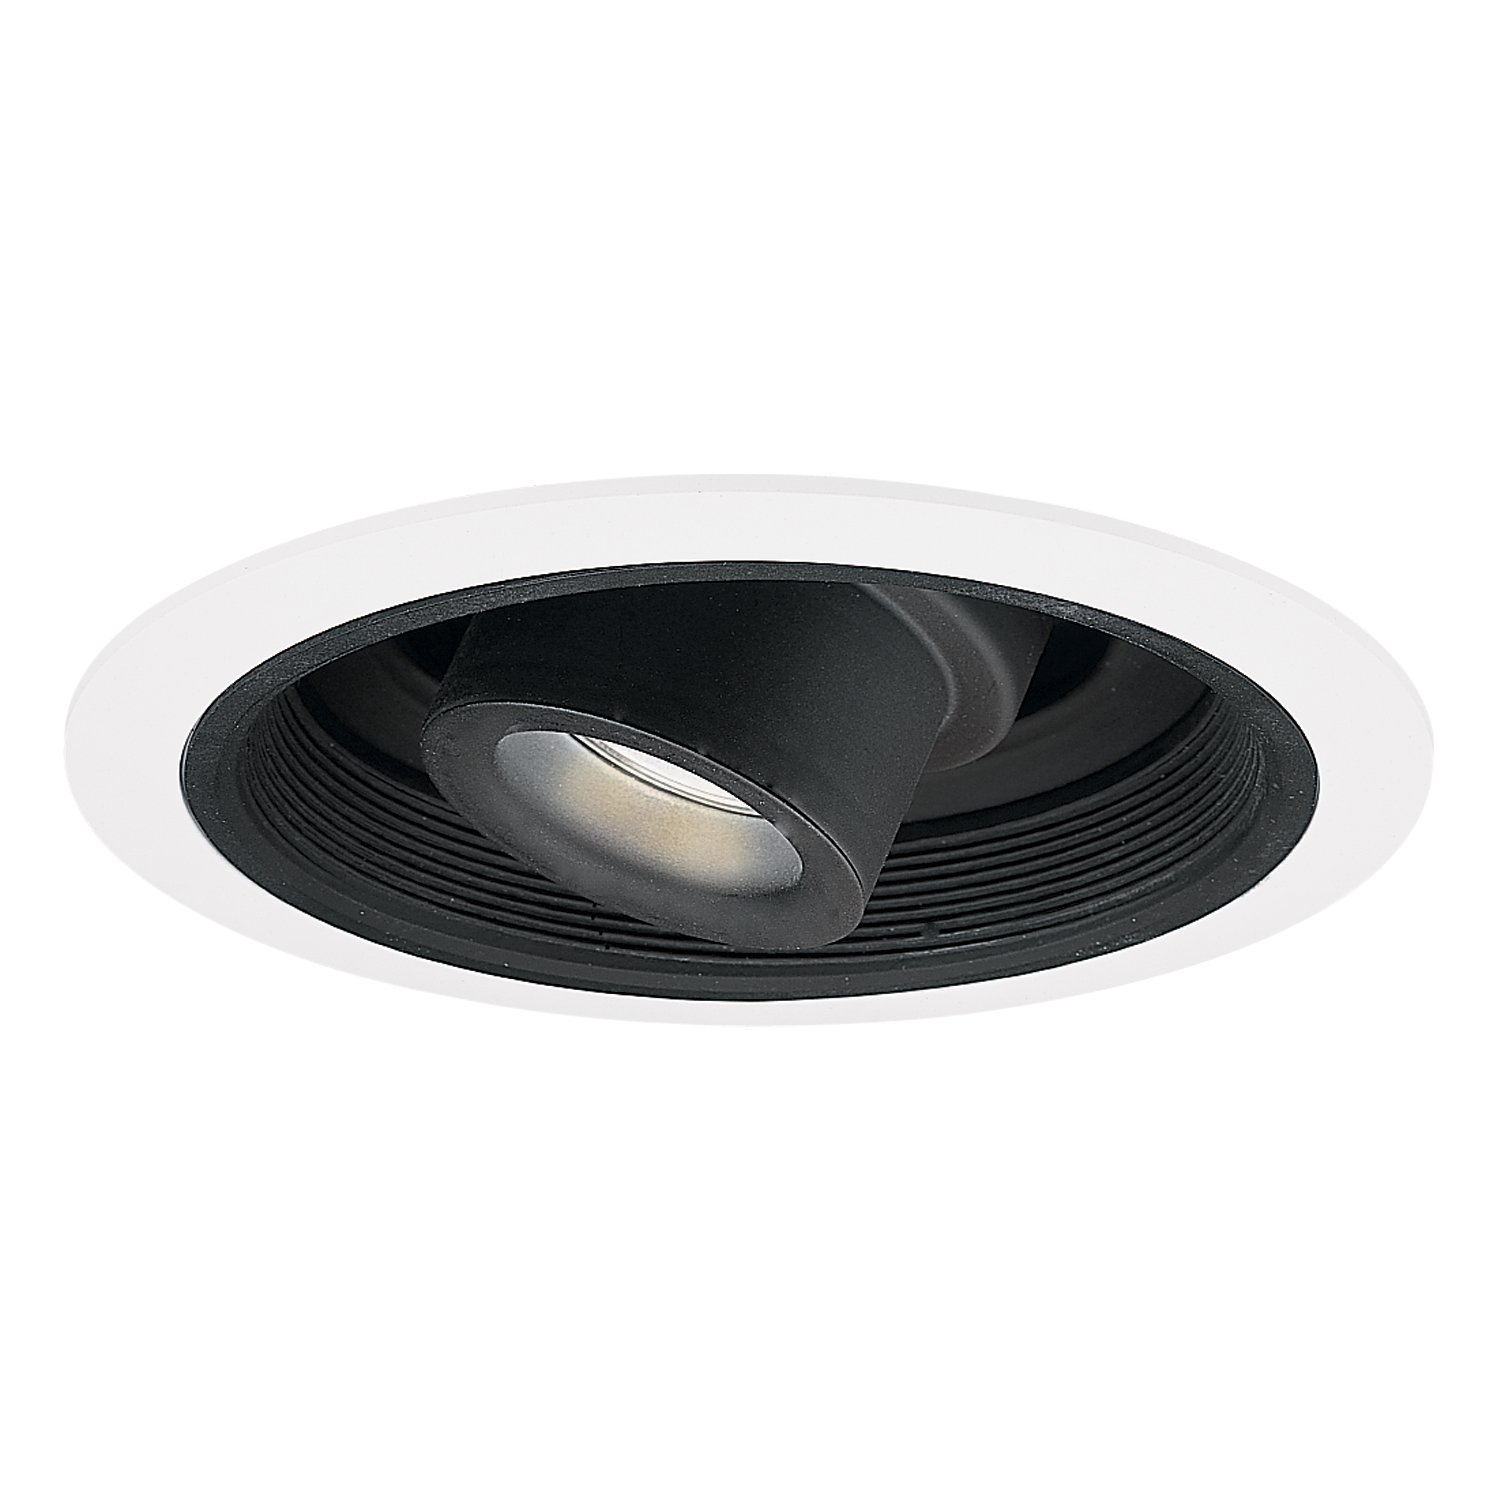 Halo Recessed 1412P 6-Inch Low Voltage Adjustable Spot with Transformer Trim and Black Baffle, White